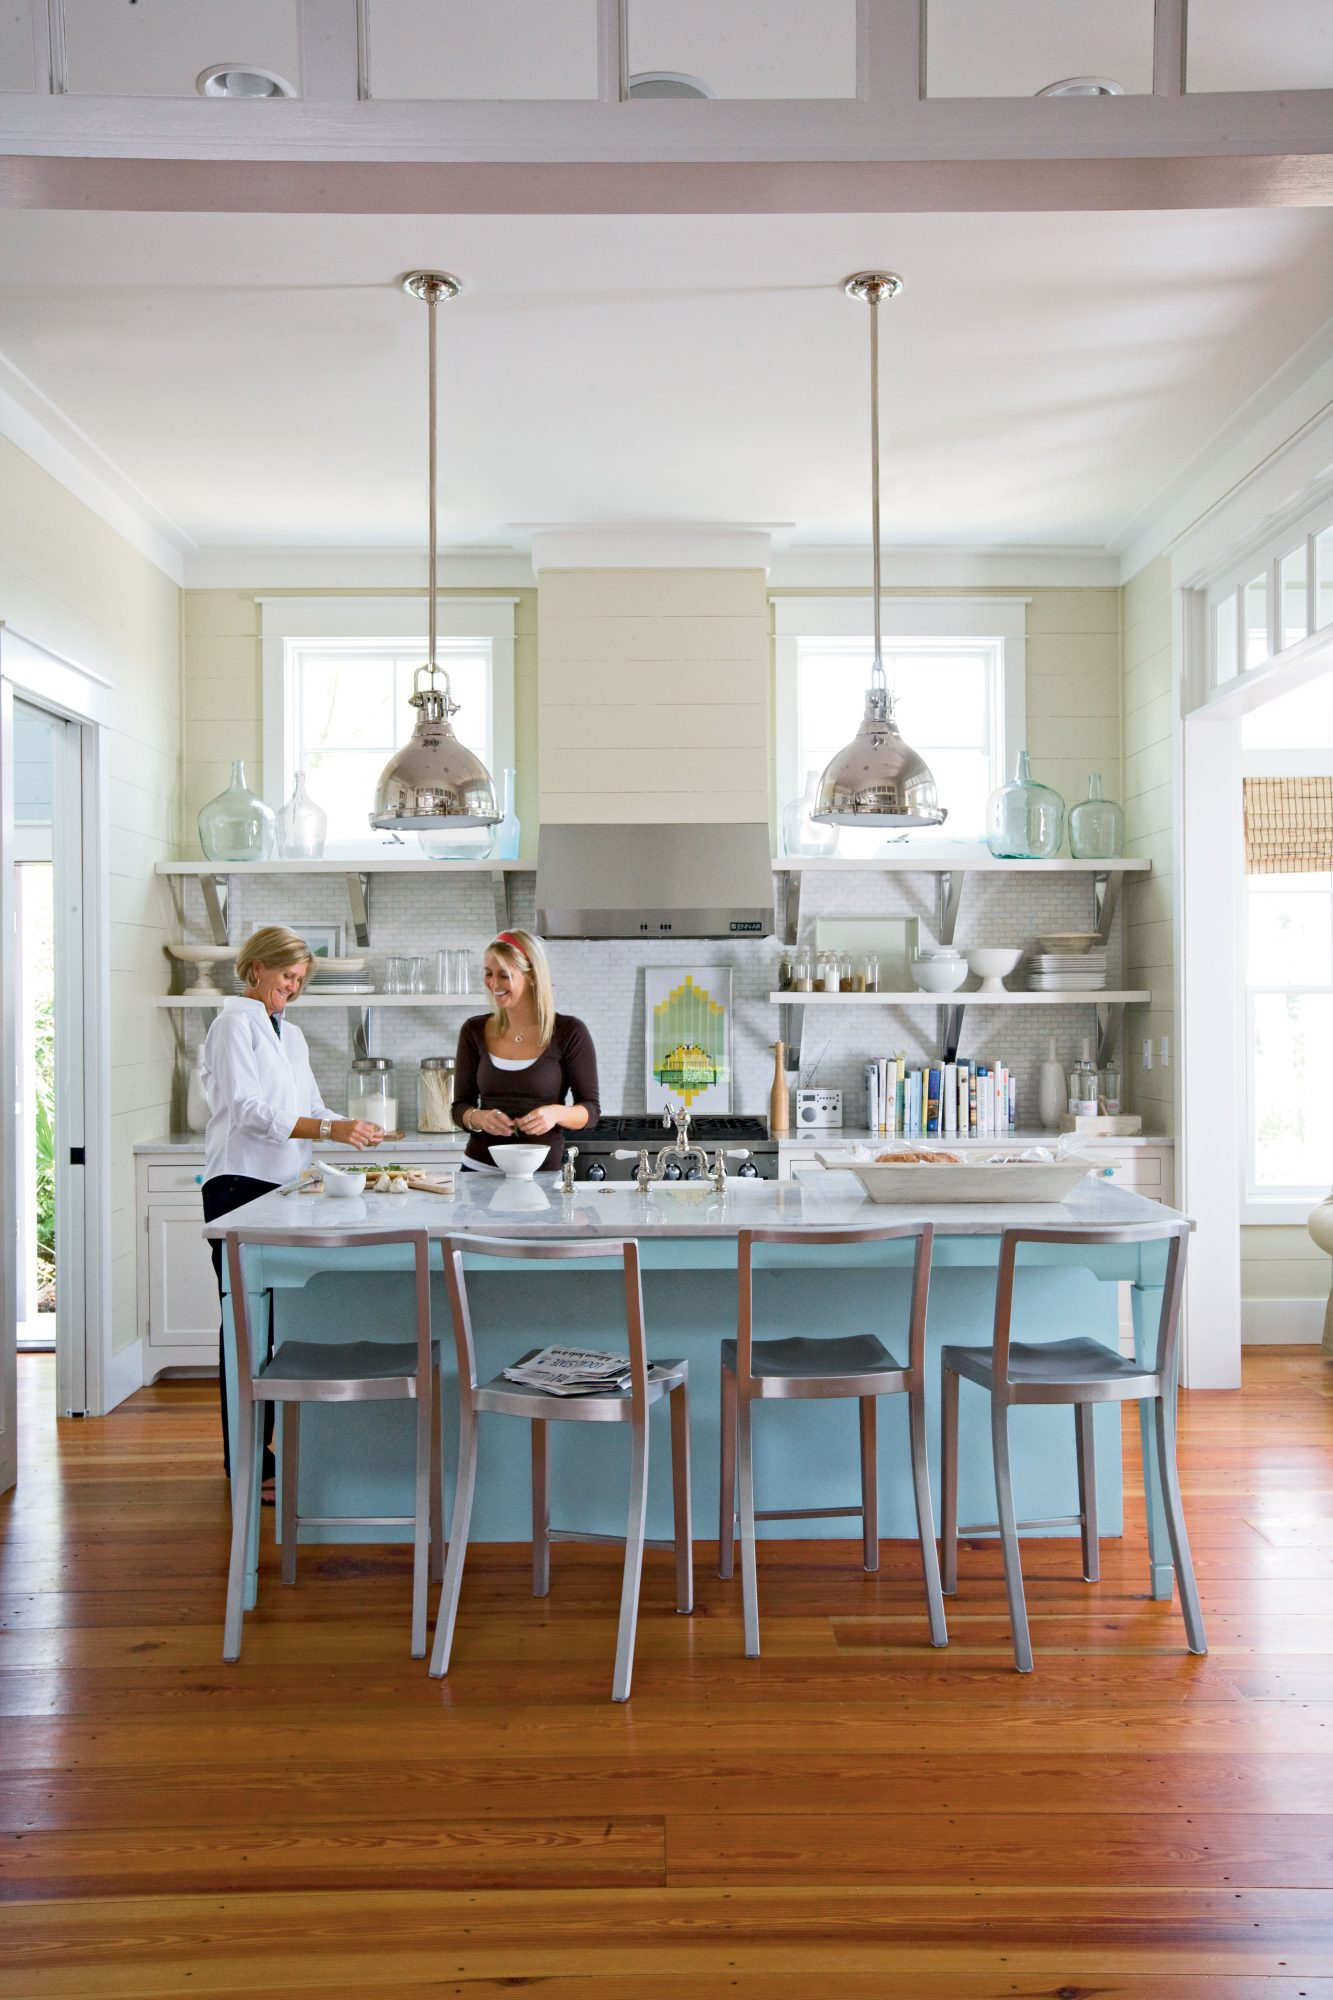 Open shelving puts your kitchen accessories on display, but keep them in the same color family for a major style boost. A painted island adds a splash of color.